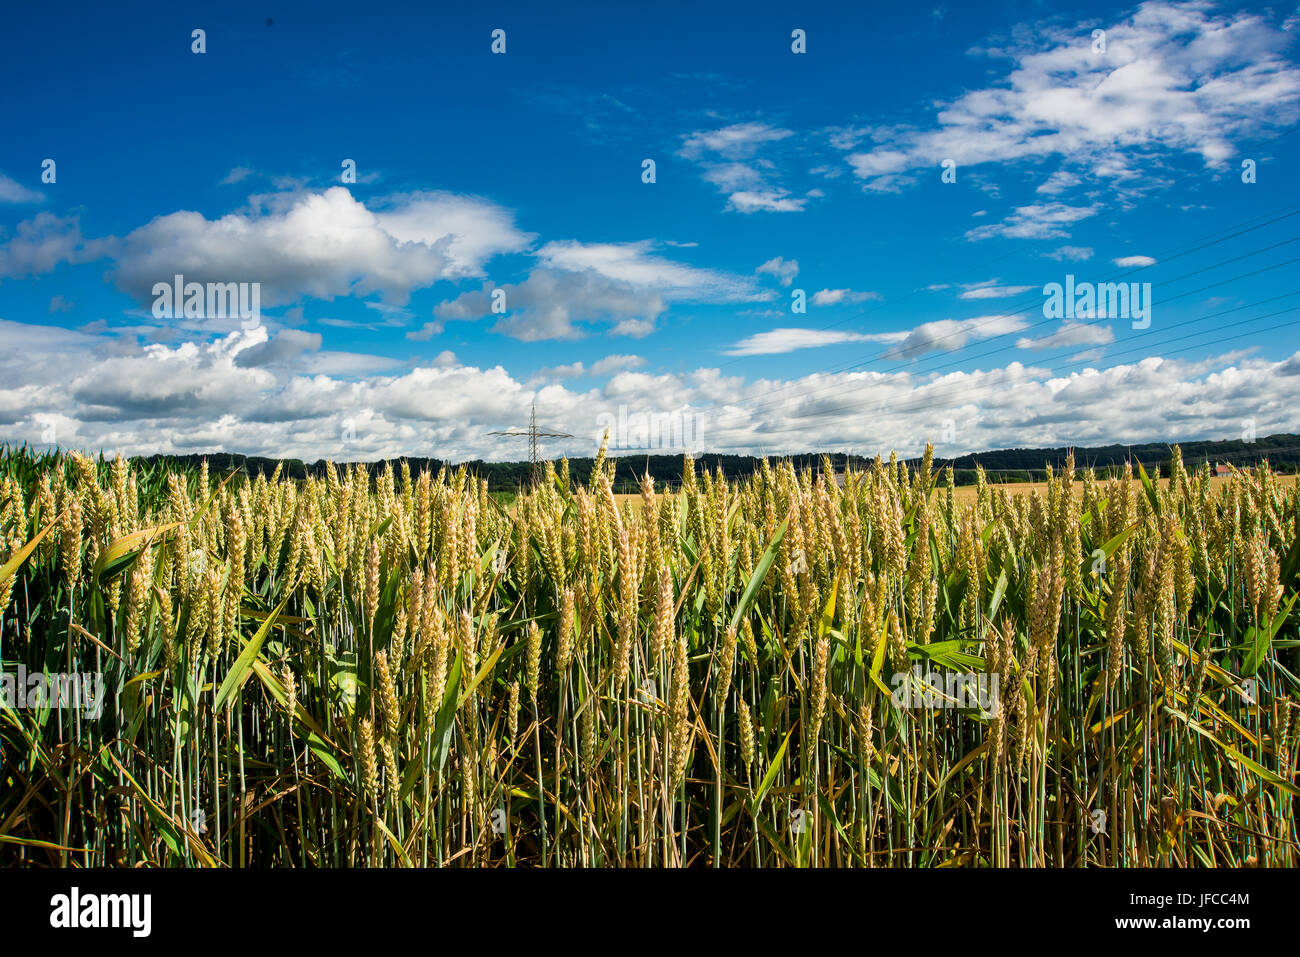 A wheat field in Germany under a blue sky - Stock Image